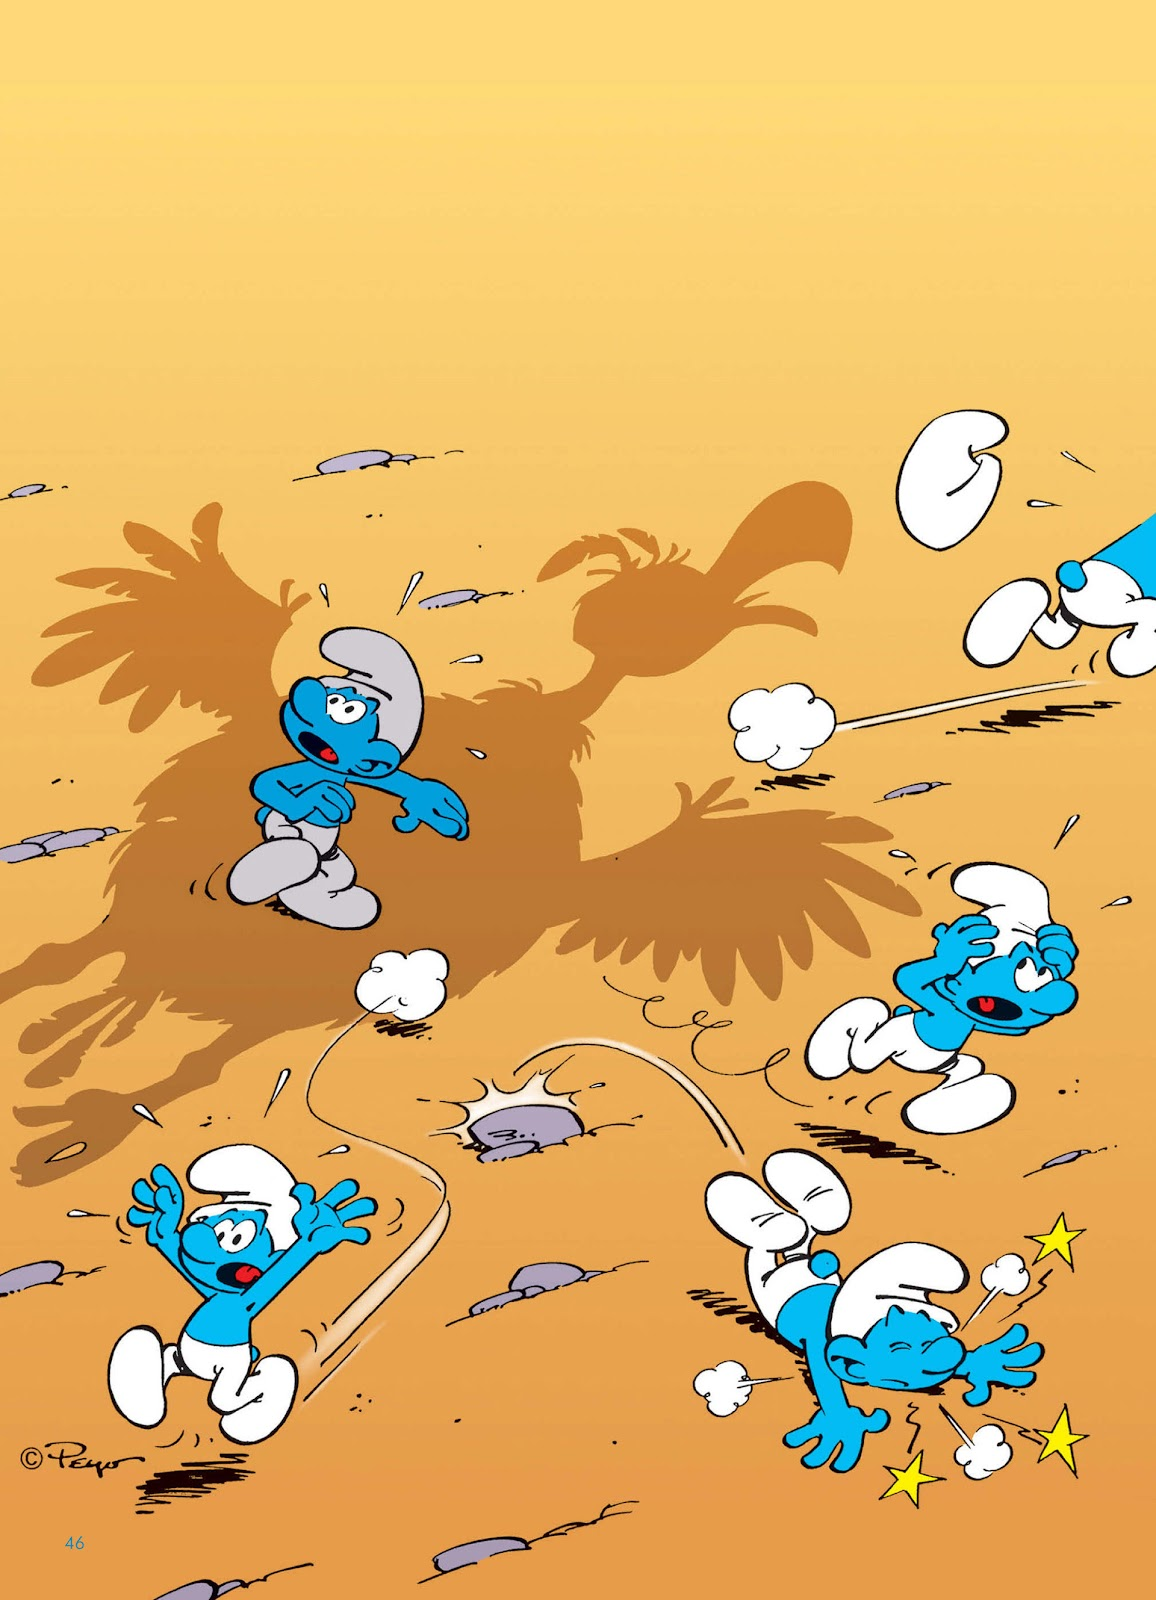 Read online The Smurfs comic -  Issue #15 - 47